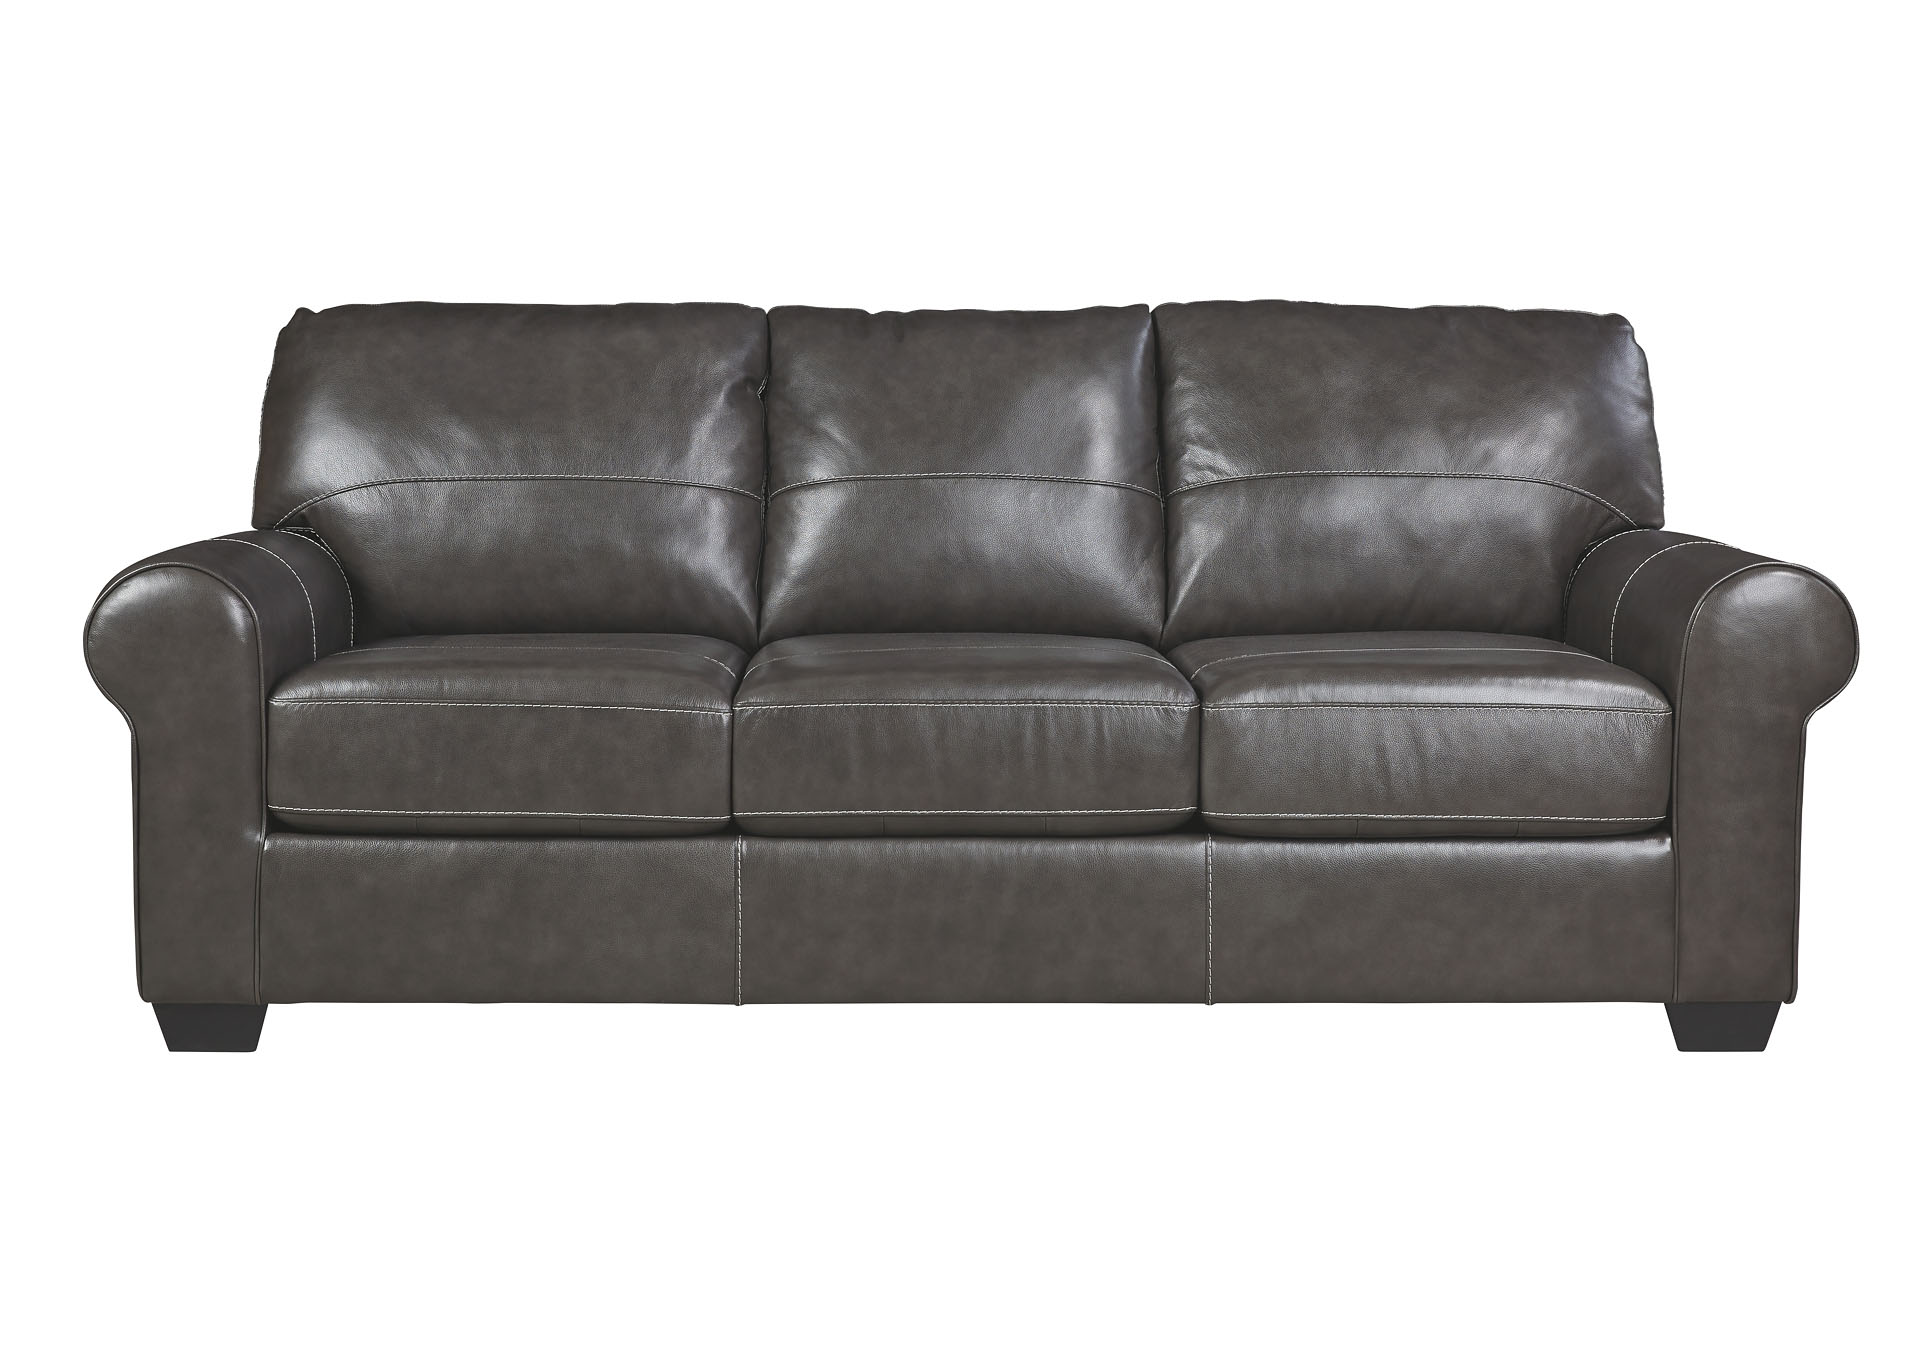 Cozi Furniture New Carrollton Md Canterelli Gunmetal Sofa